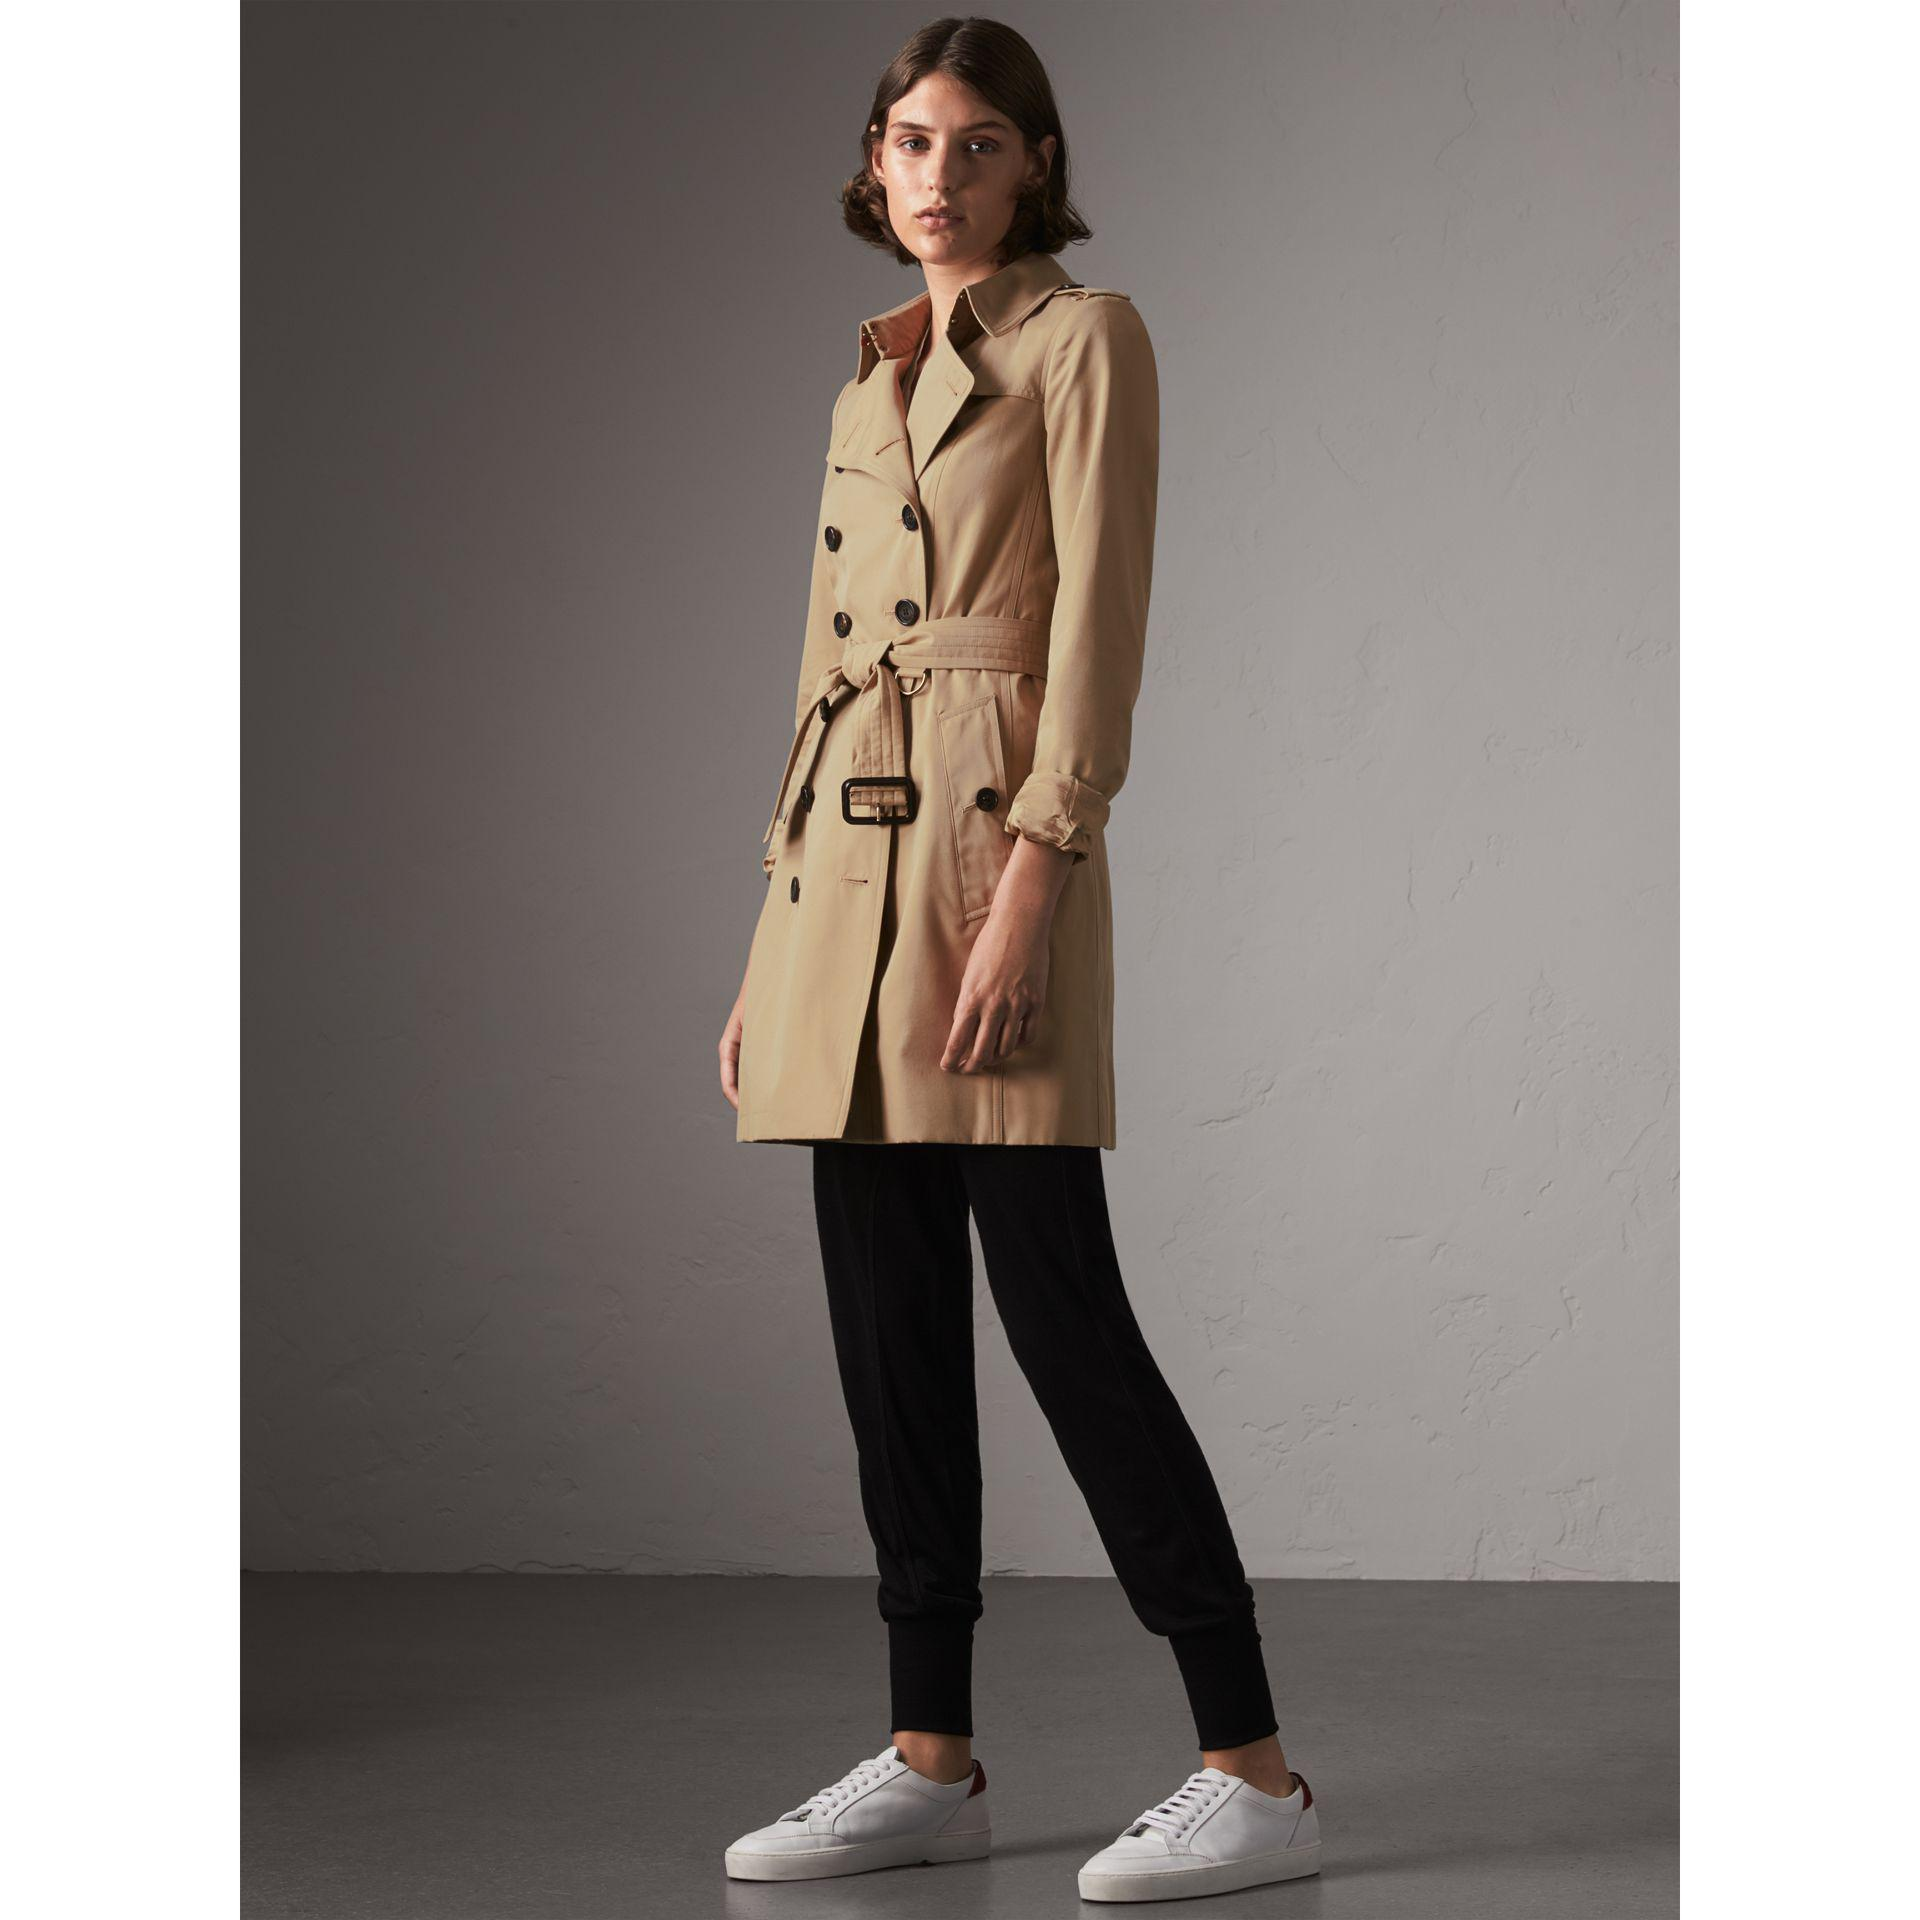 Burberry The Chelsea mid-length trench coat Recommend Online Cheap Wiki 3bB9PxFAc